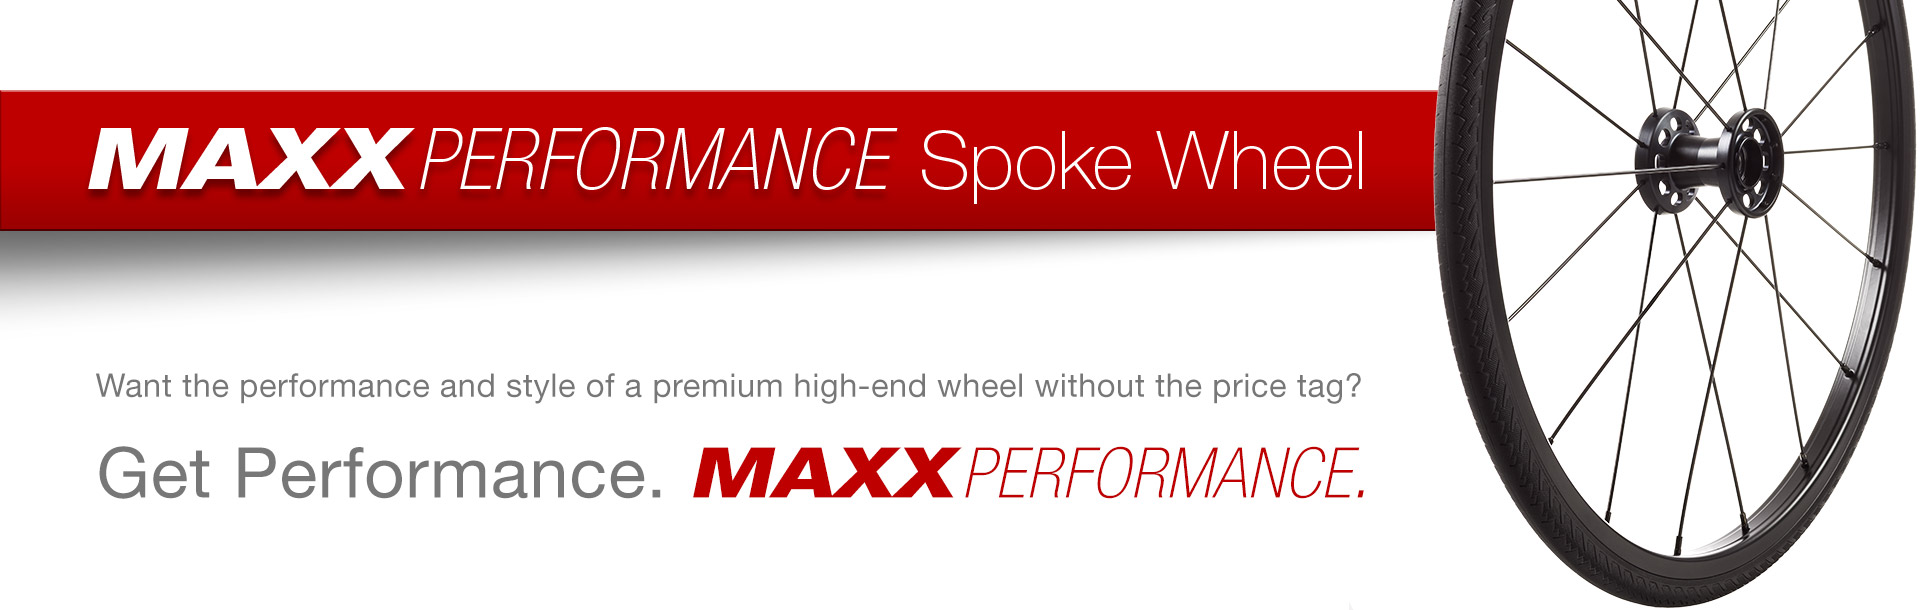 New Maxx Performance Spoke Wheel!